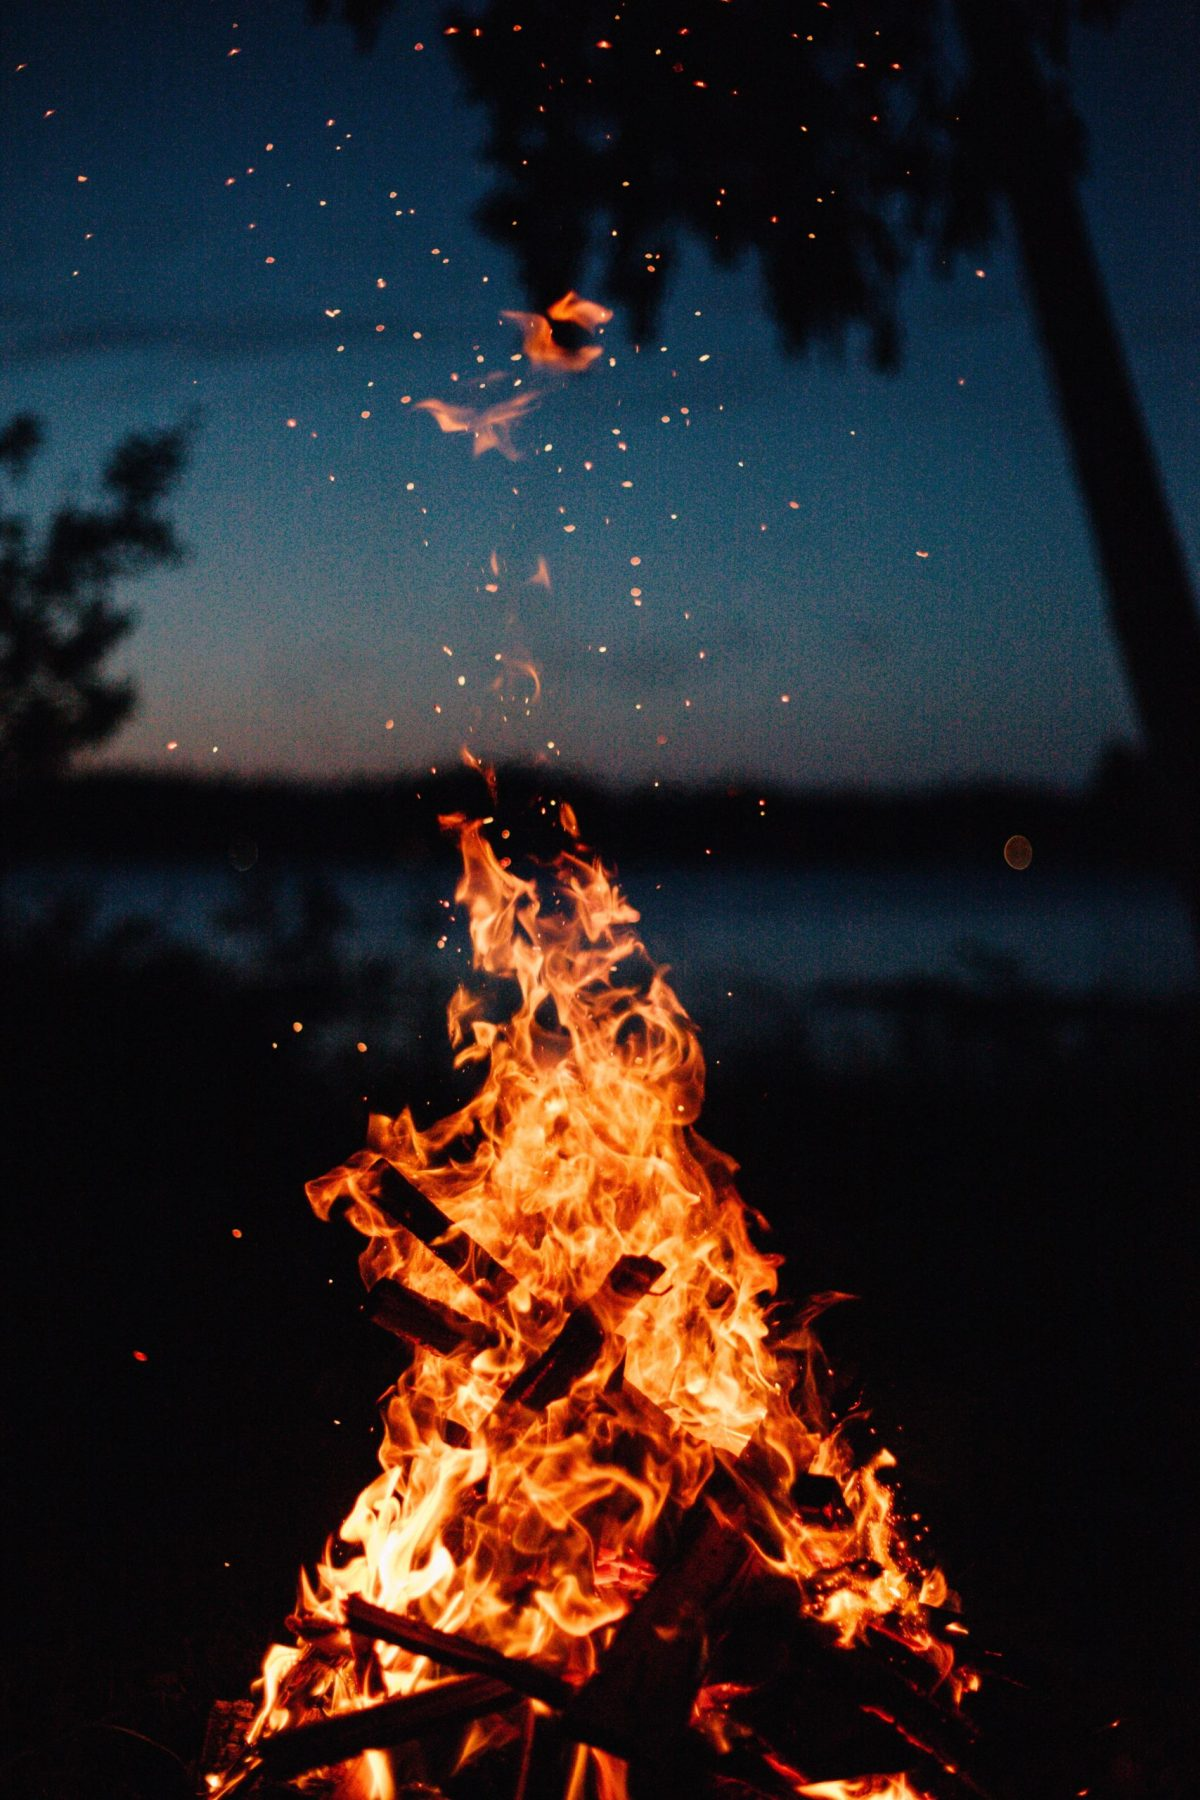 Roaring bonfire, with fading light on the horizon